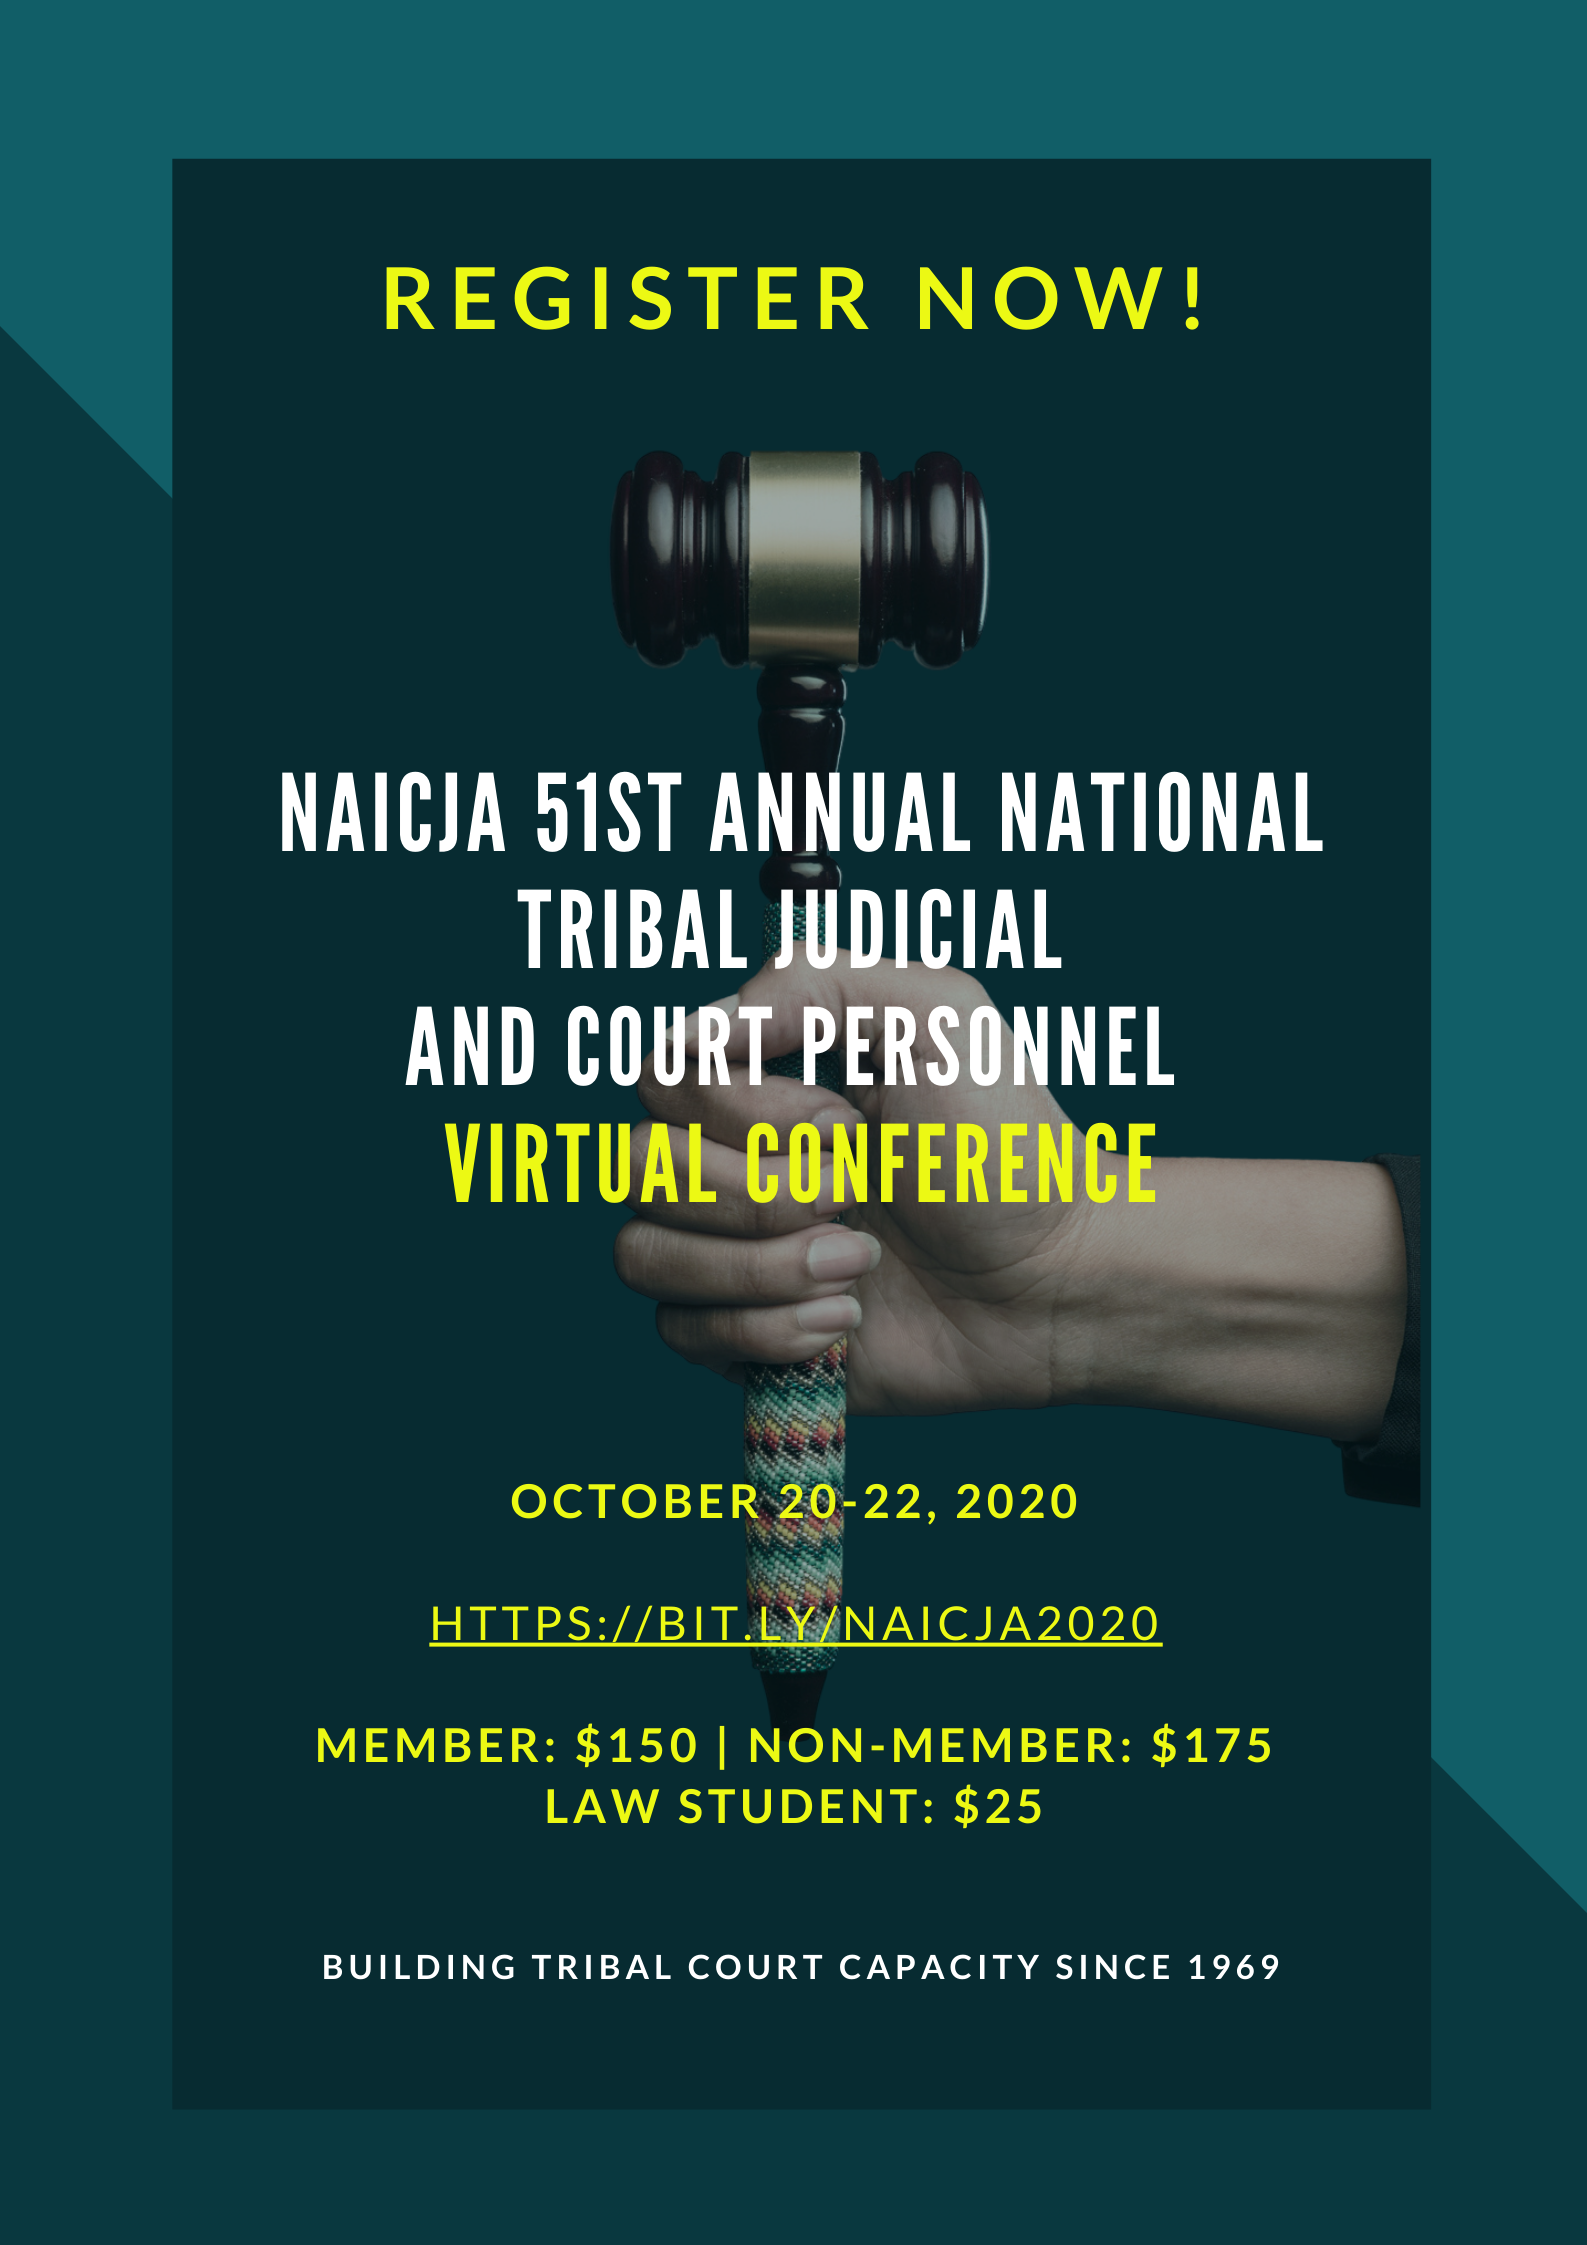 NAICJA Register Now Poster